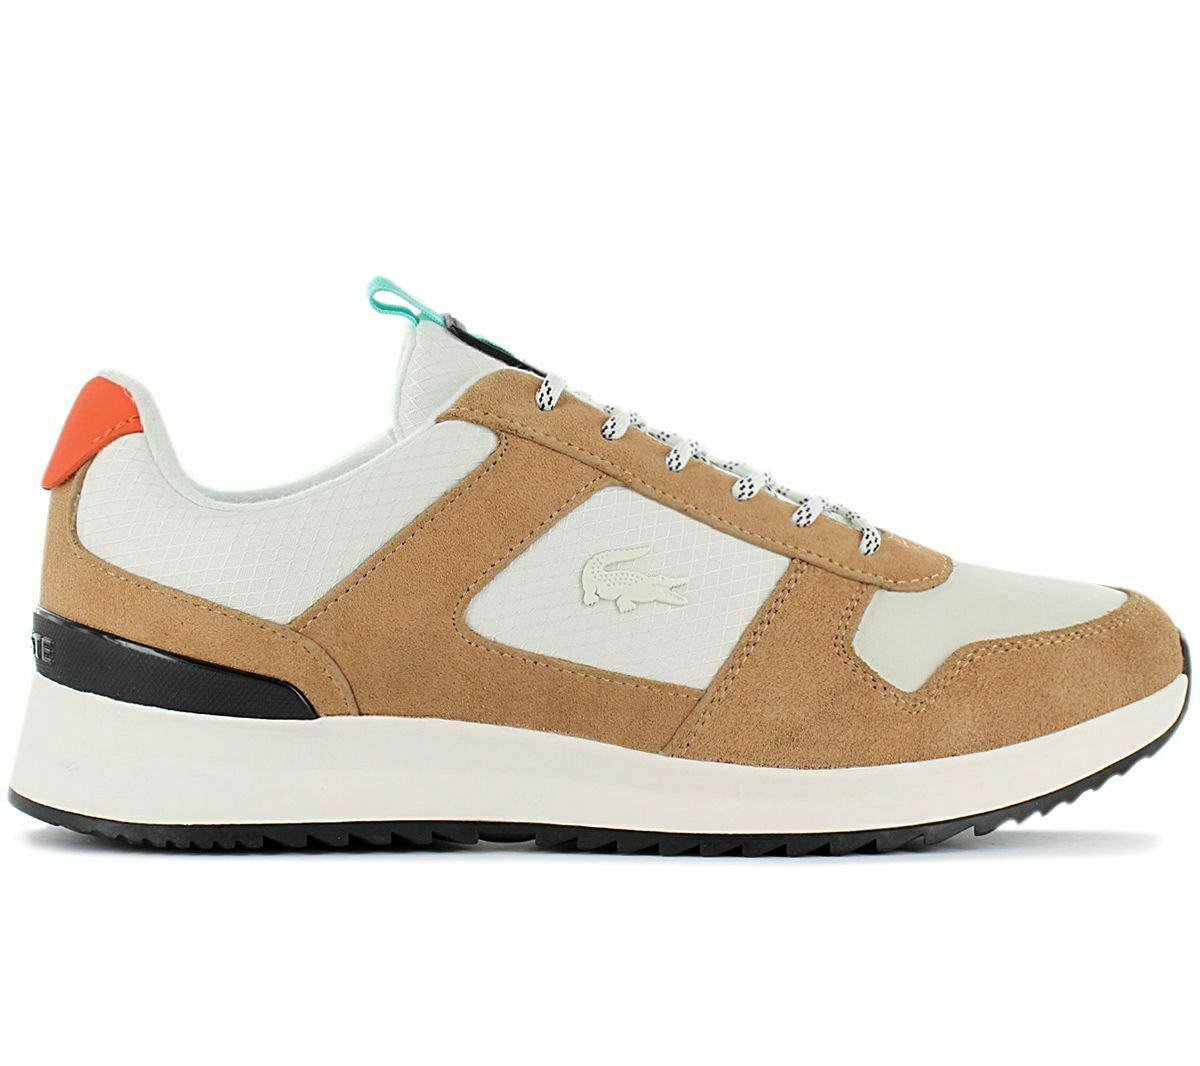 Lacoste Joggeur 2.0 Men's Sneaker Brown White 7-40SMA0030F57 Leisure Shoes New